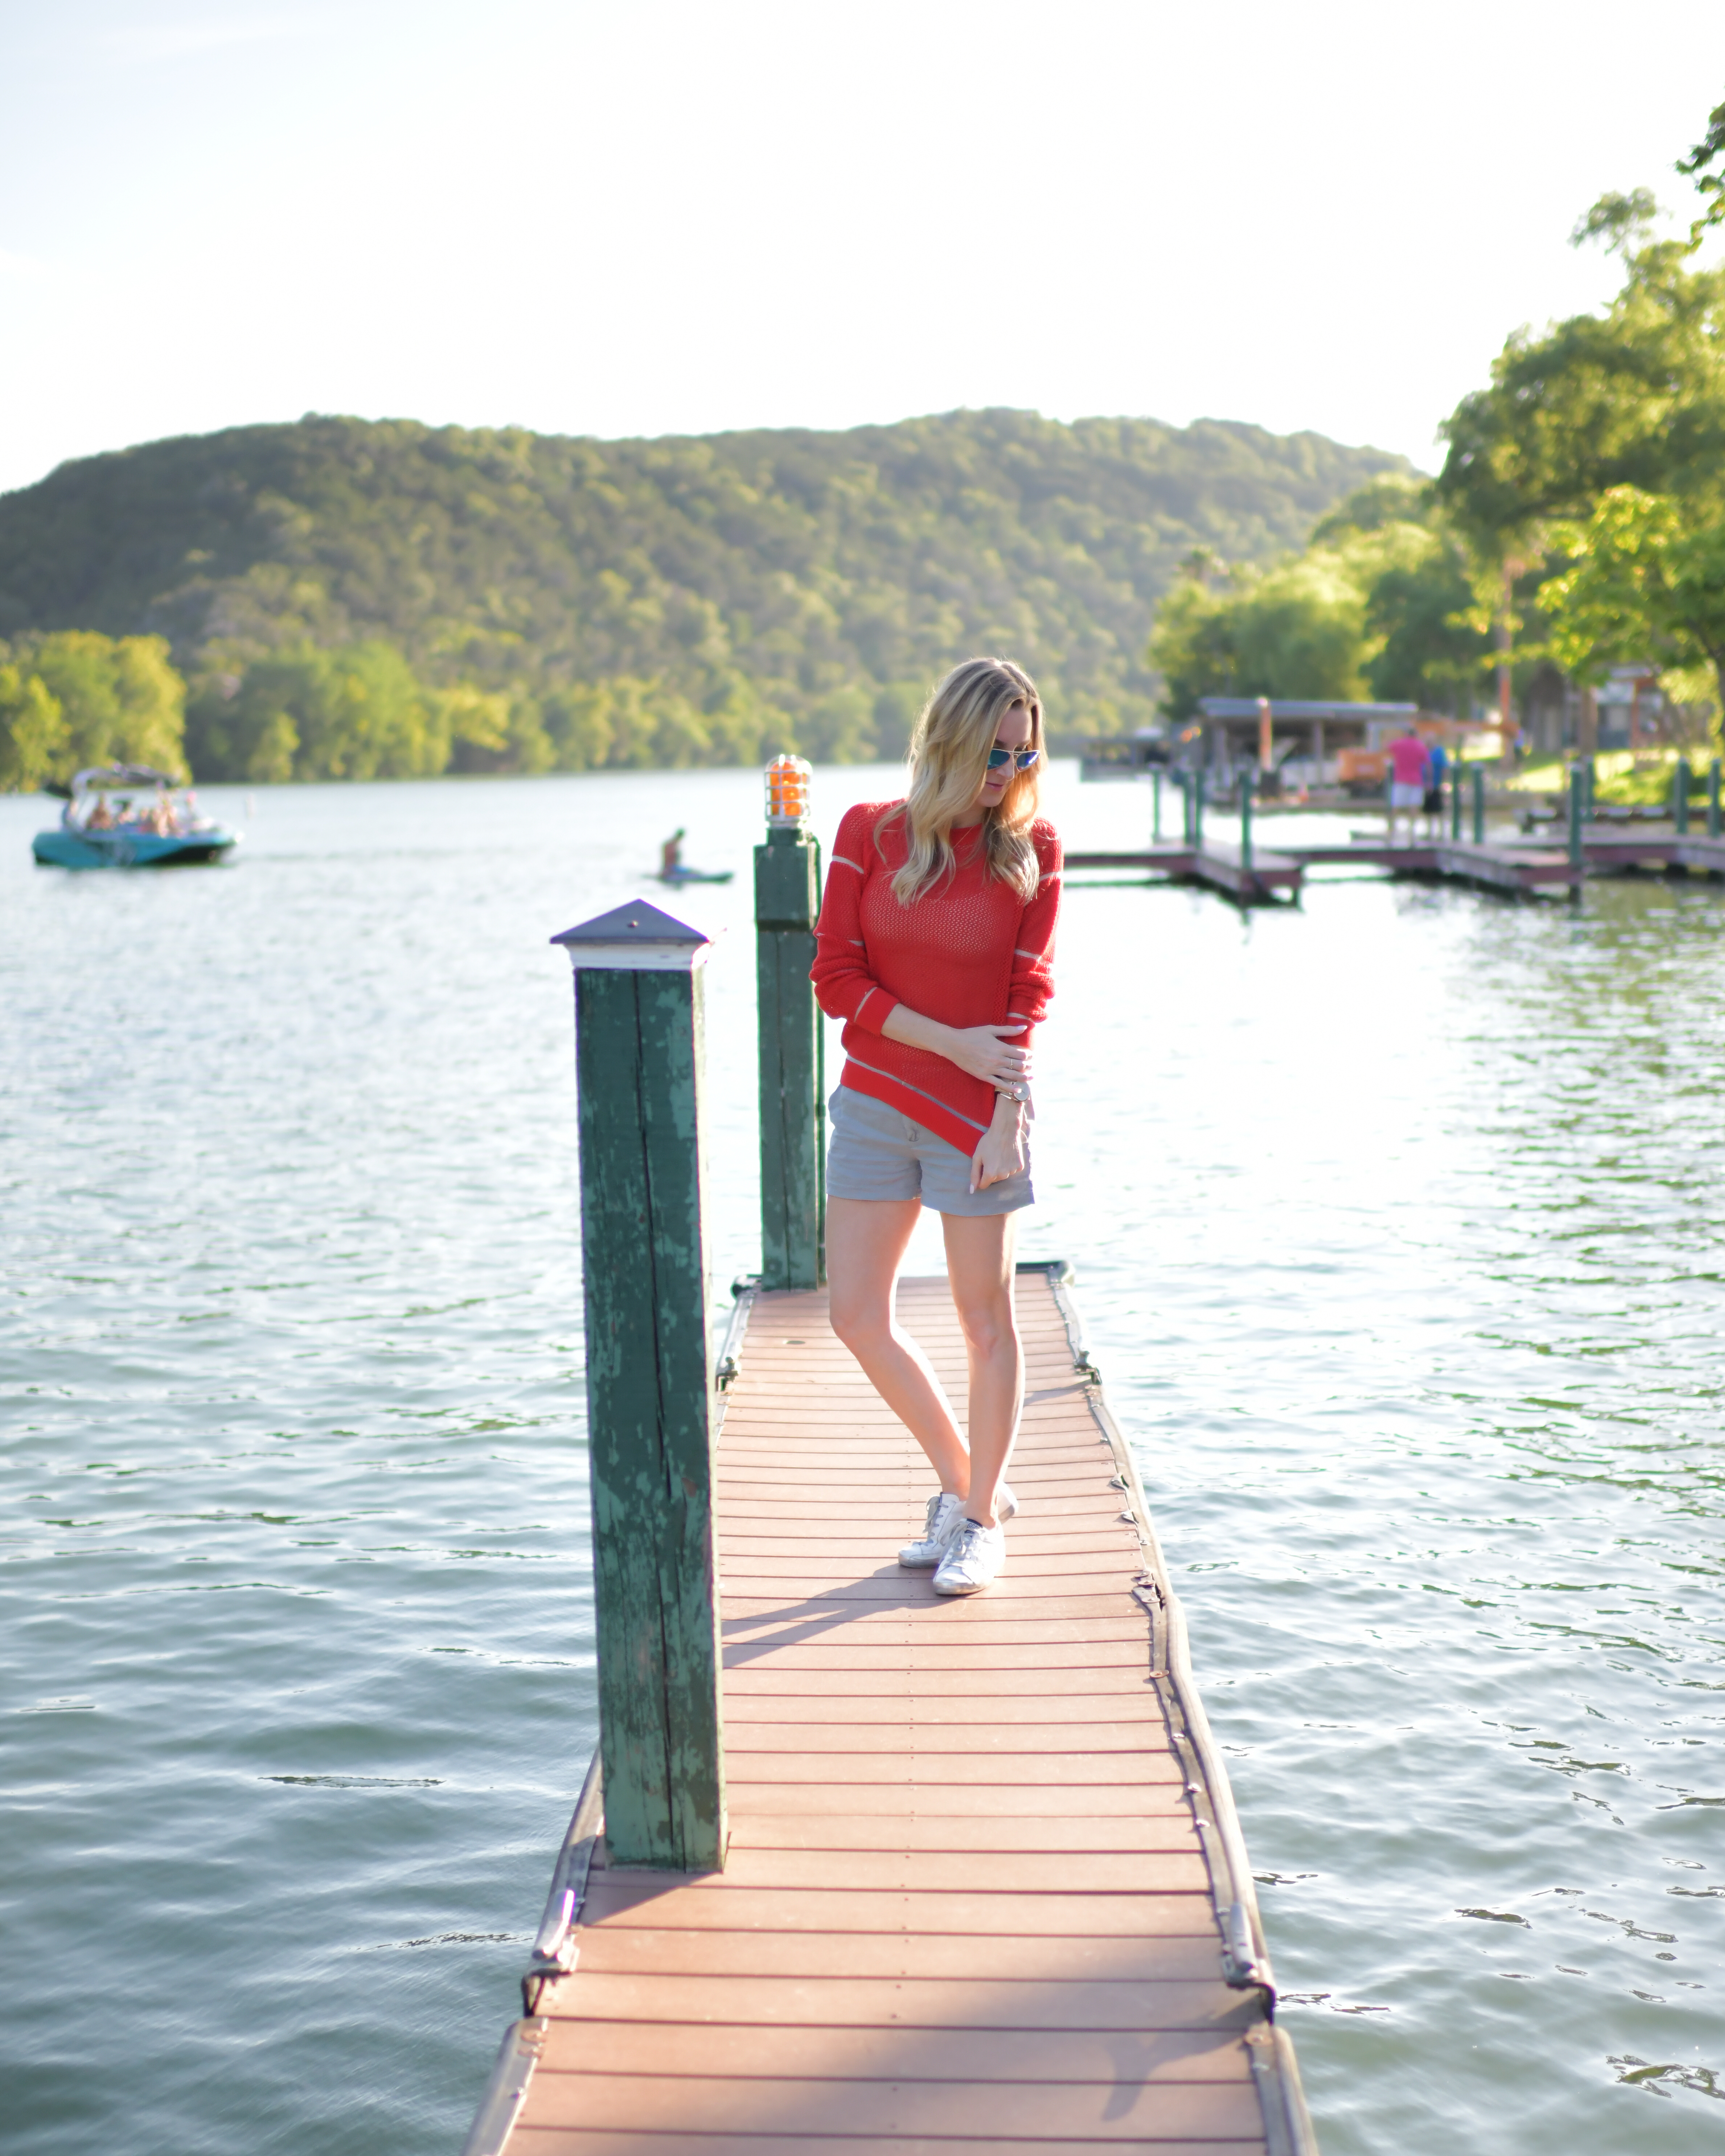 Lake Austin Vacation On The Water, What To Pack